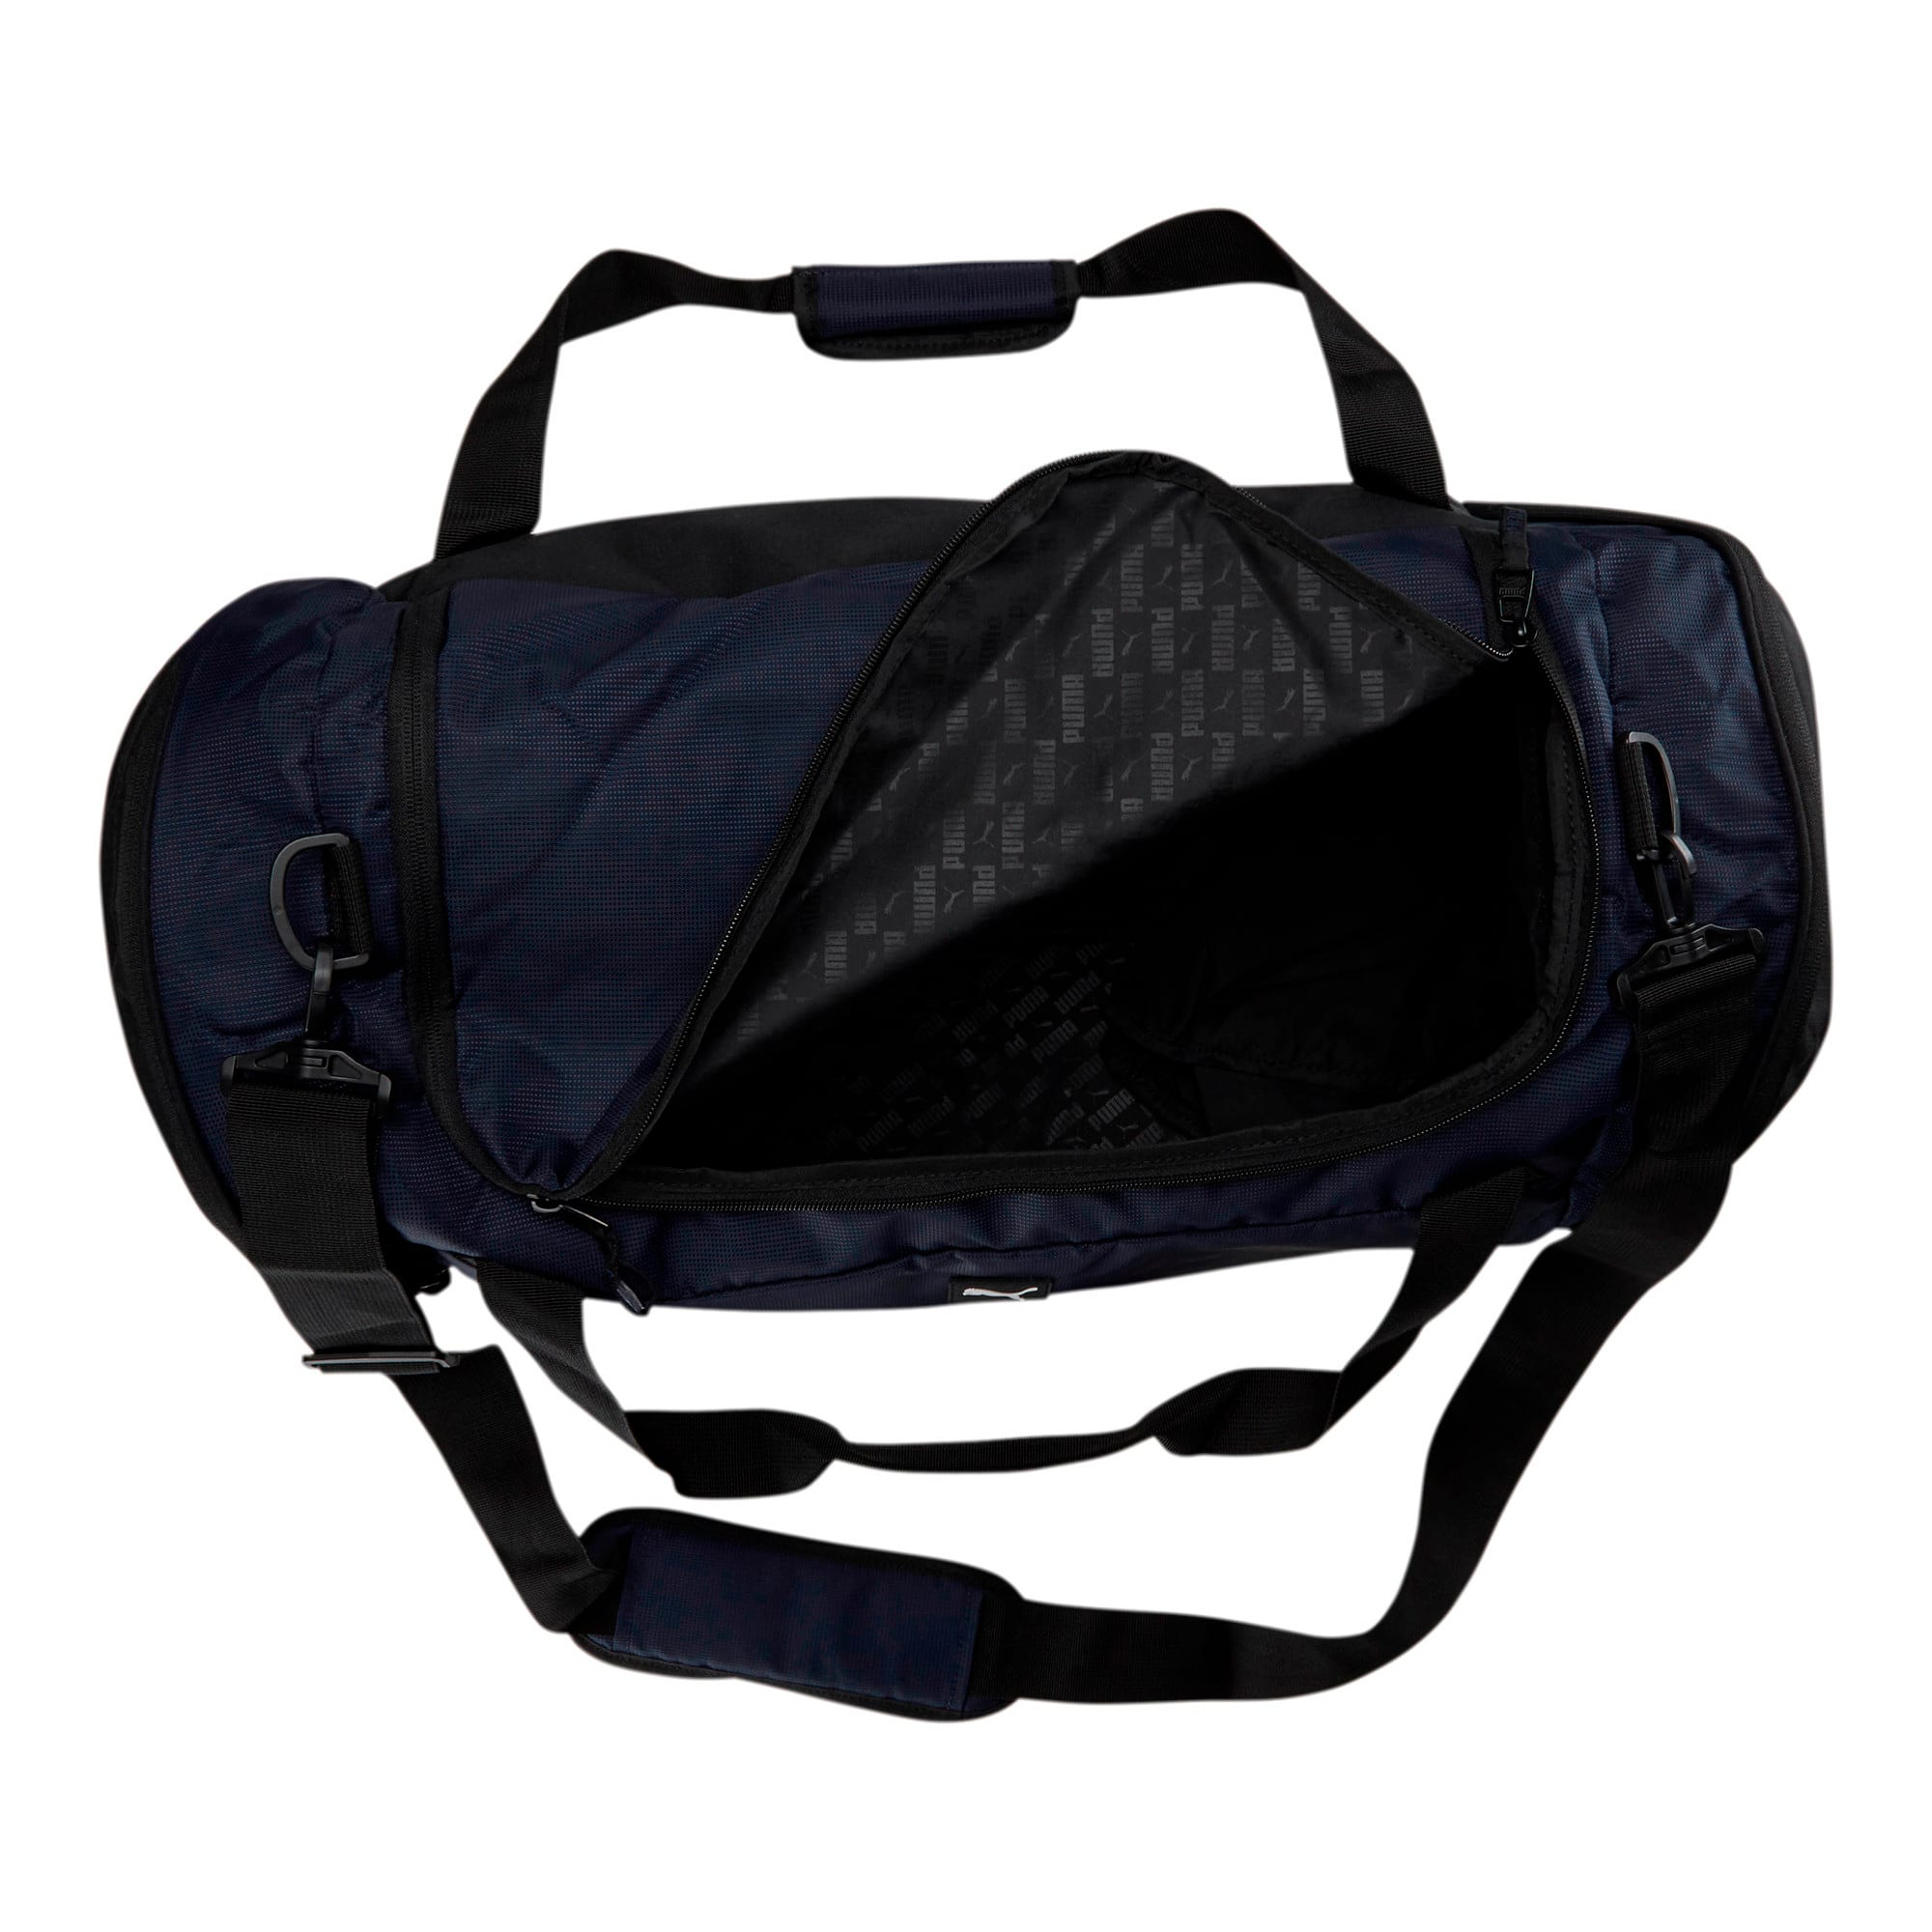 "Formation 2.0 24"" Duffel Bag, Navy, large"